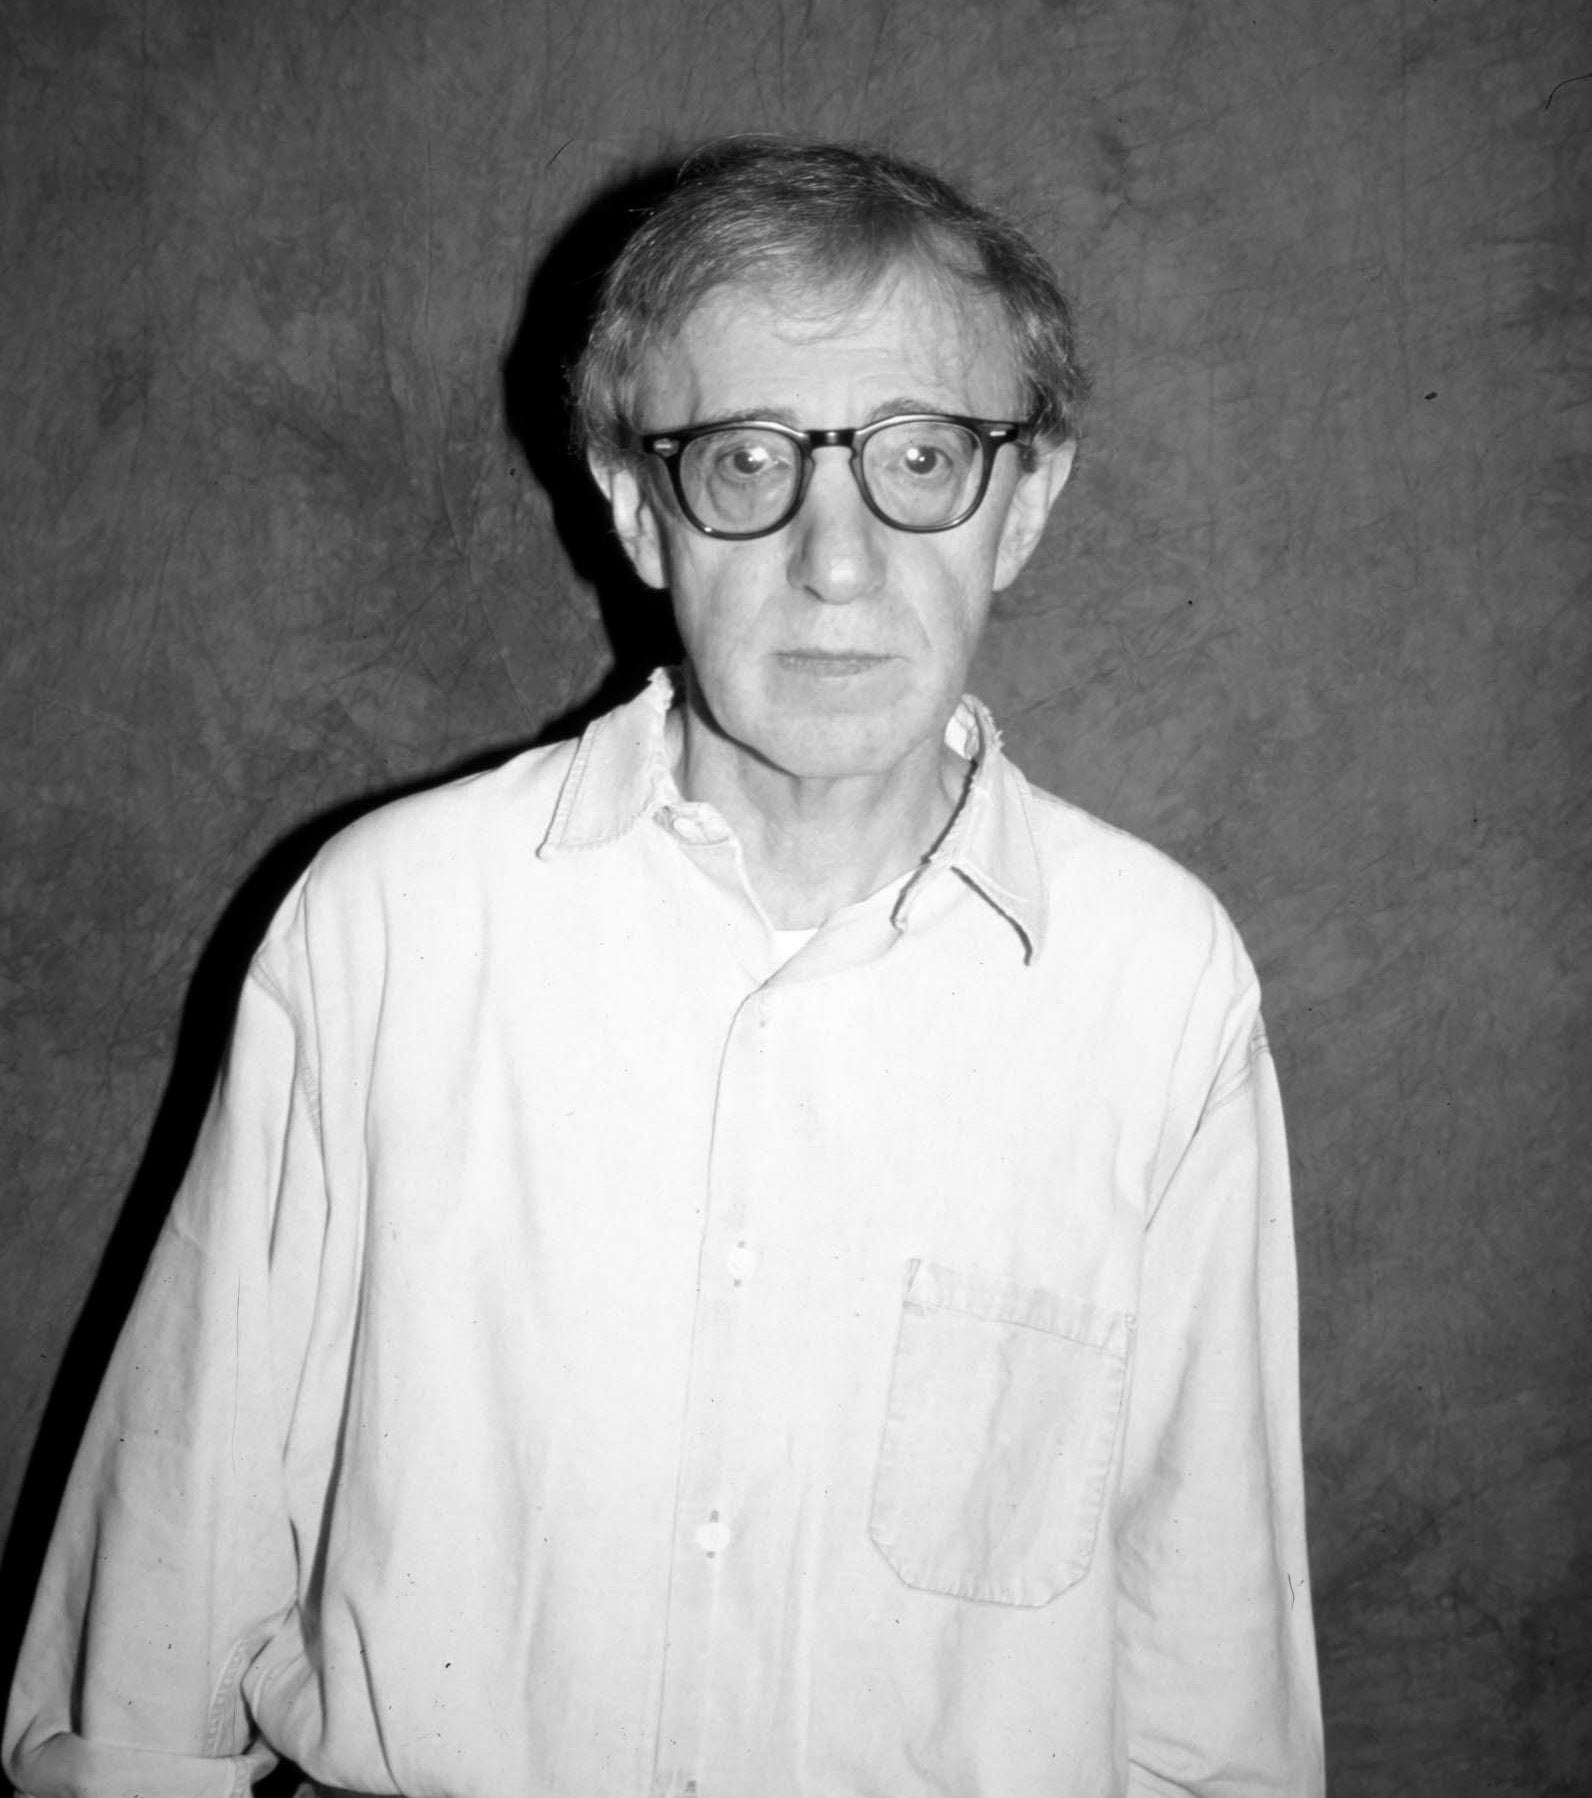 Filmmaker Woody Allen, Golden Globe winner and Cecil B. deMille recipient